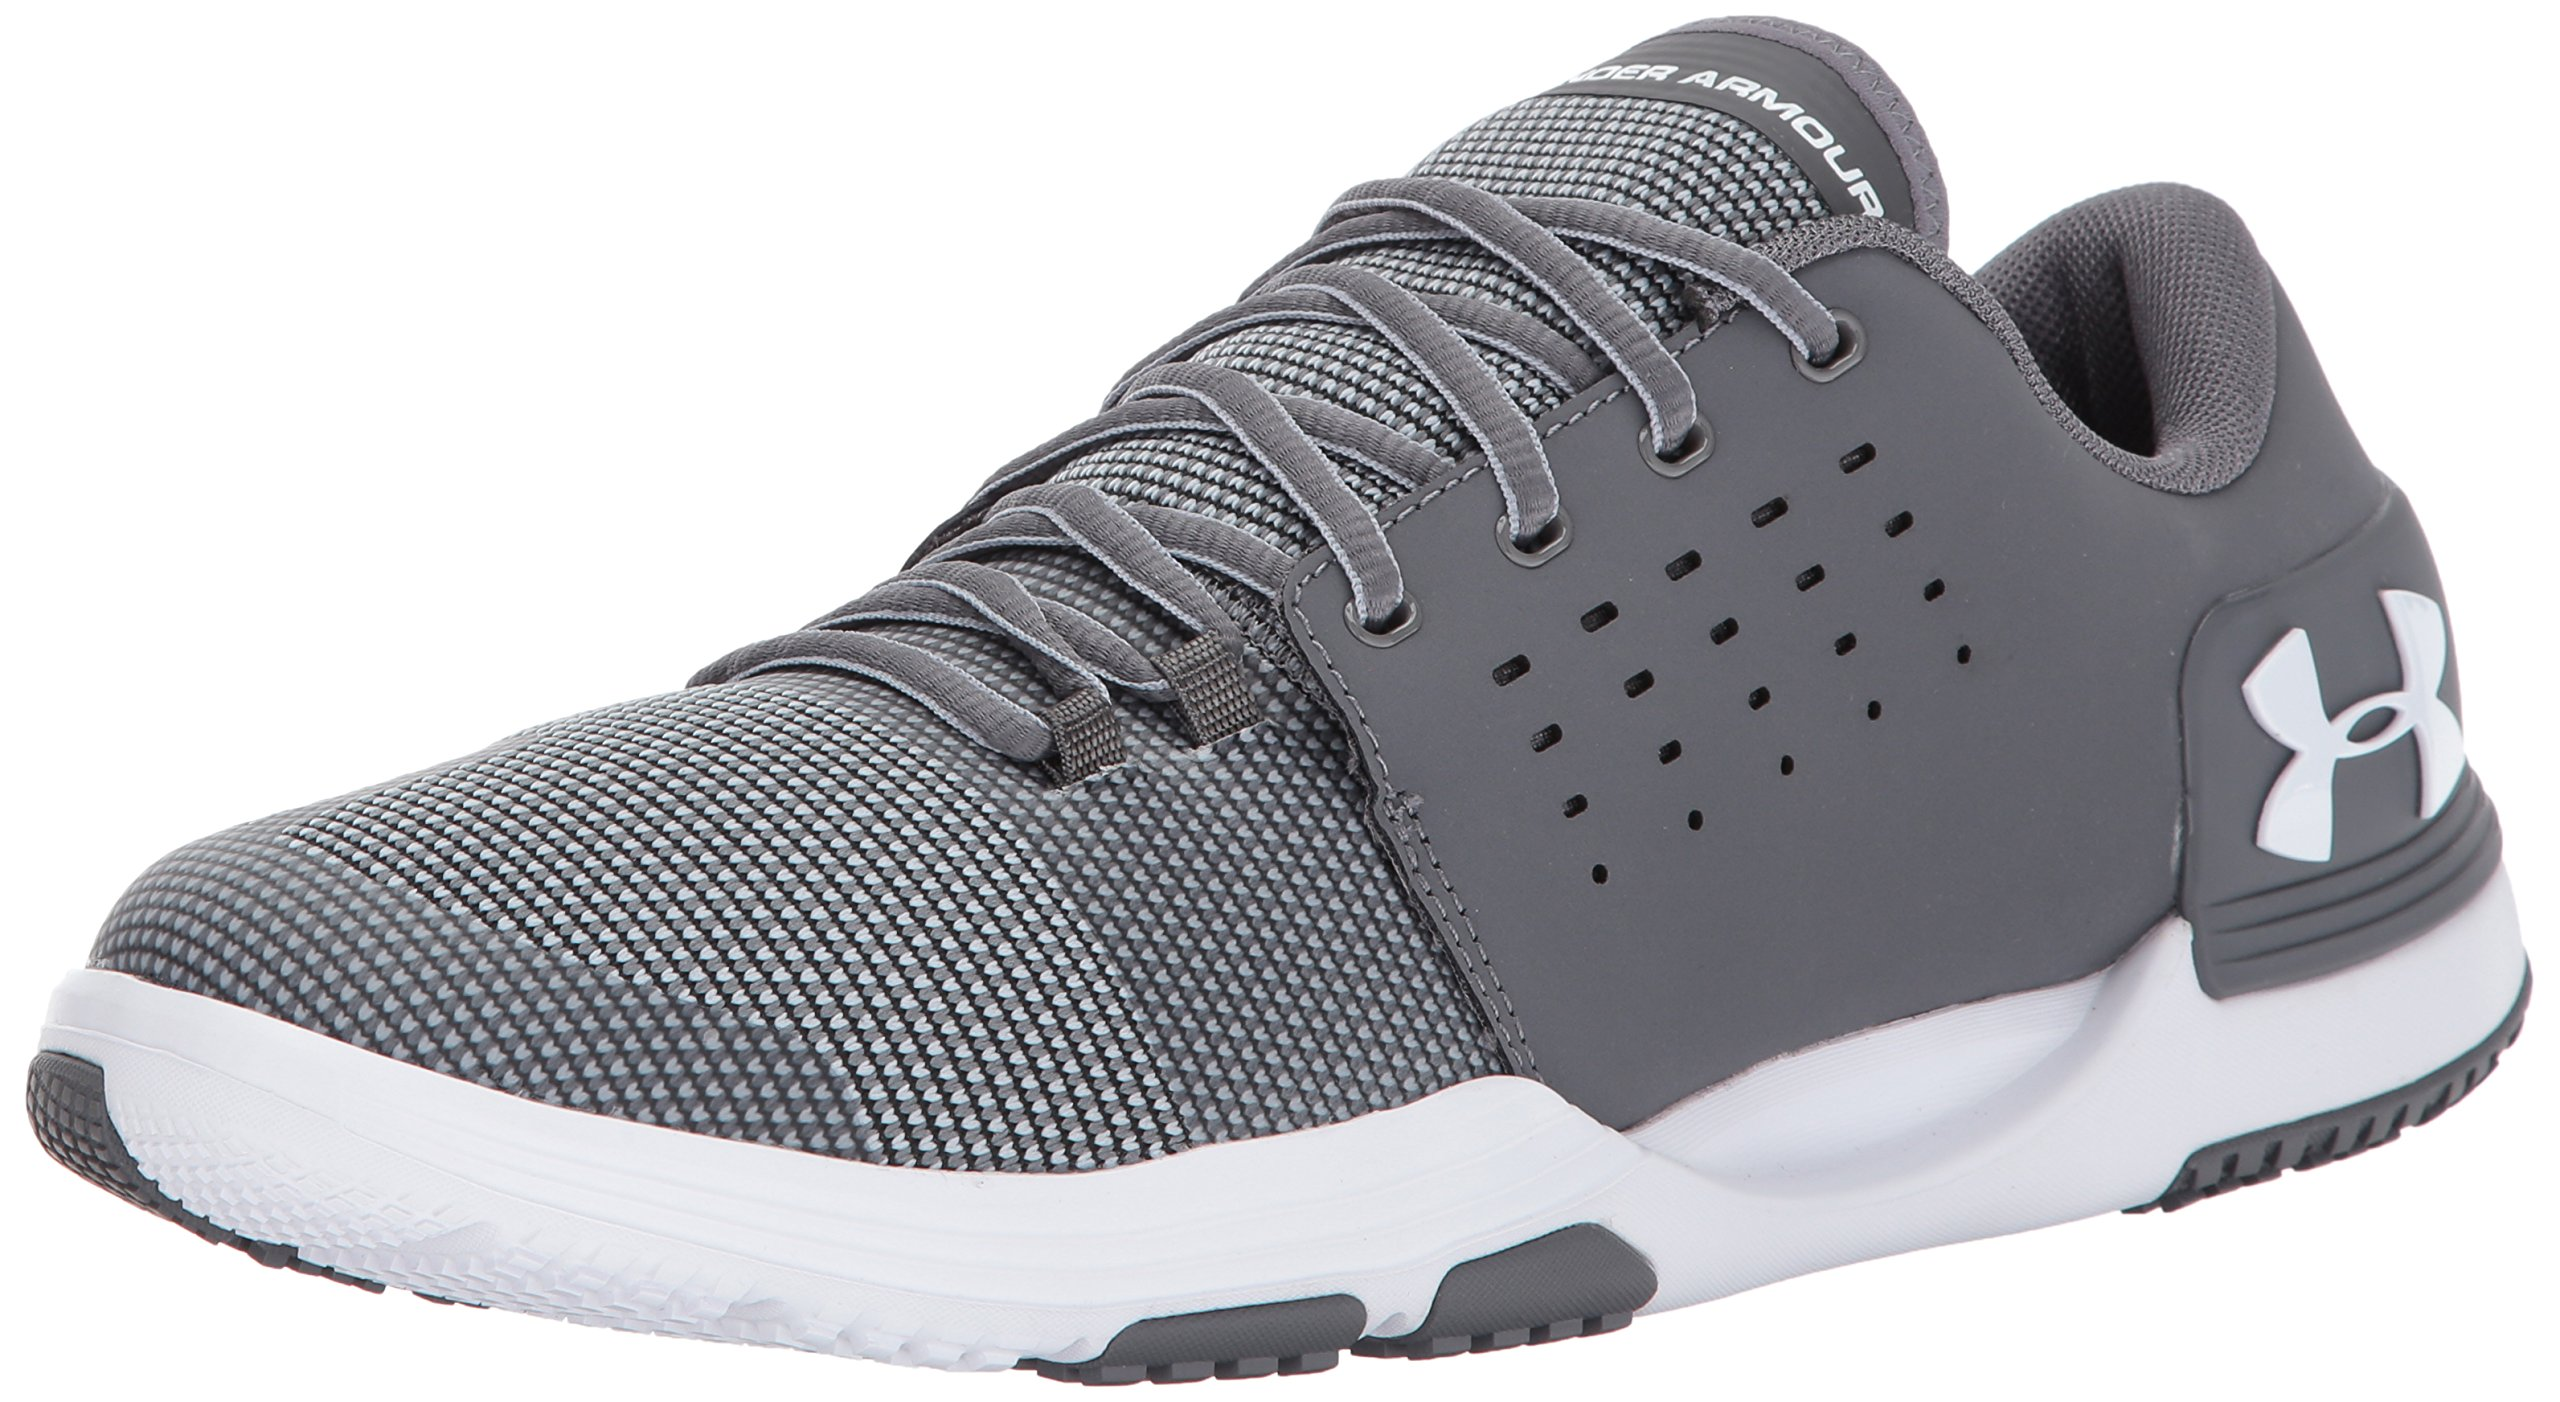 Under Armour Men's Limitless 3 Sneaker, Graphite (101)/White, 11 by Under Armour